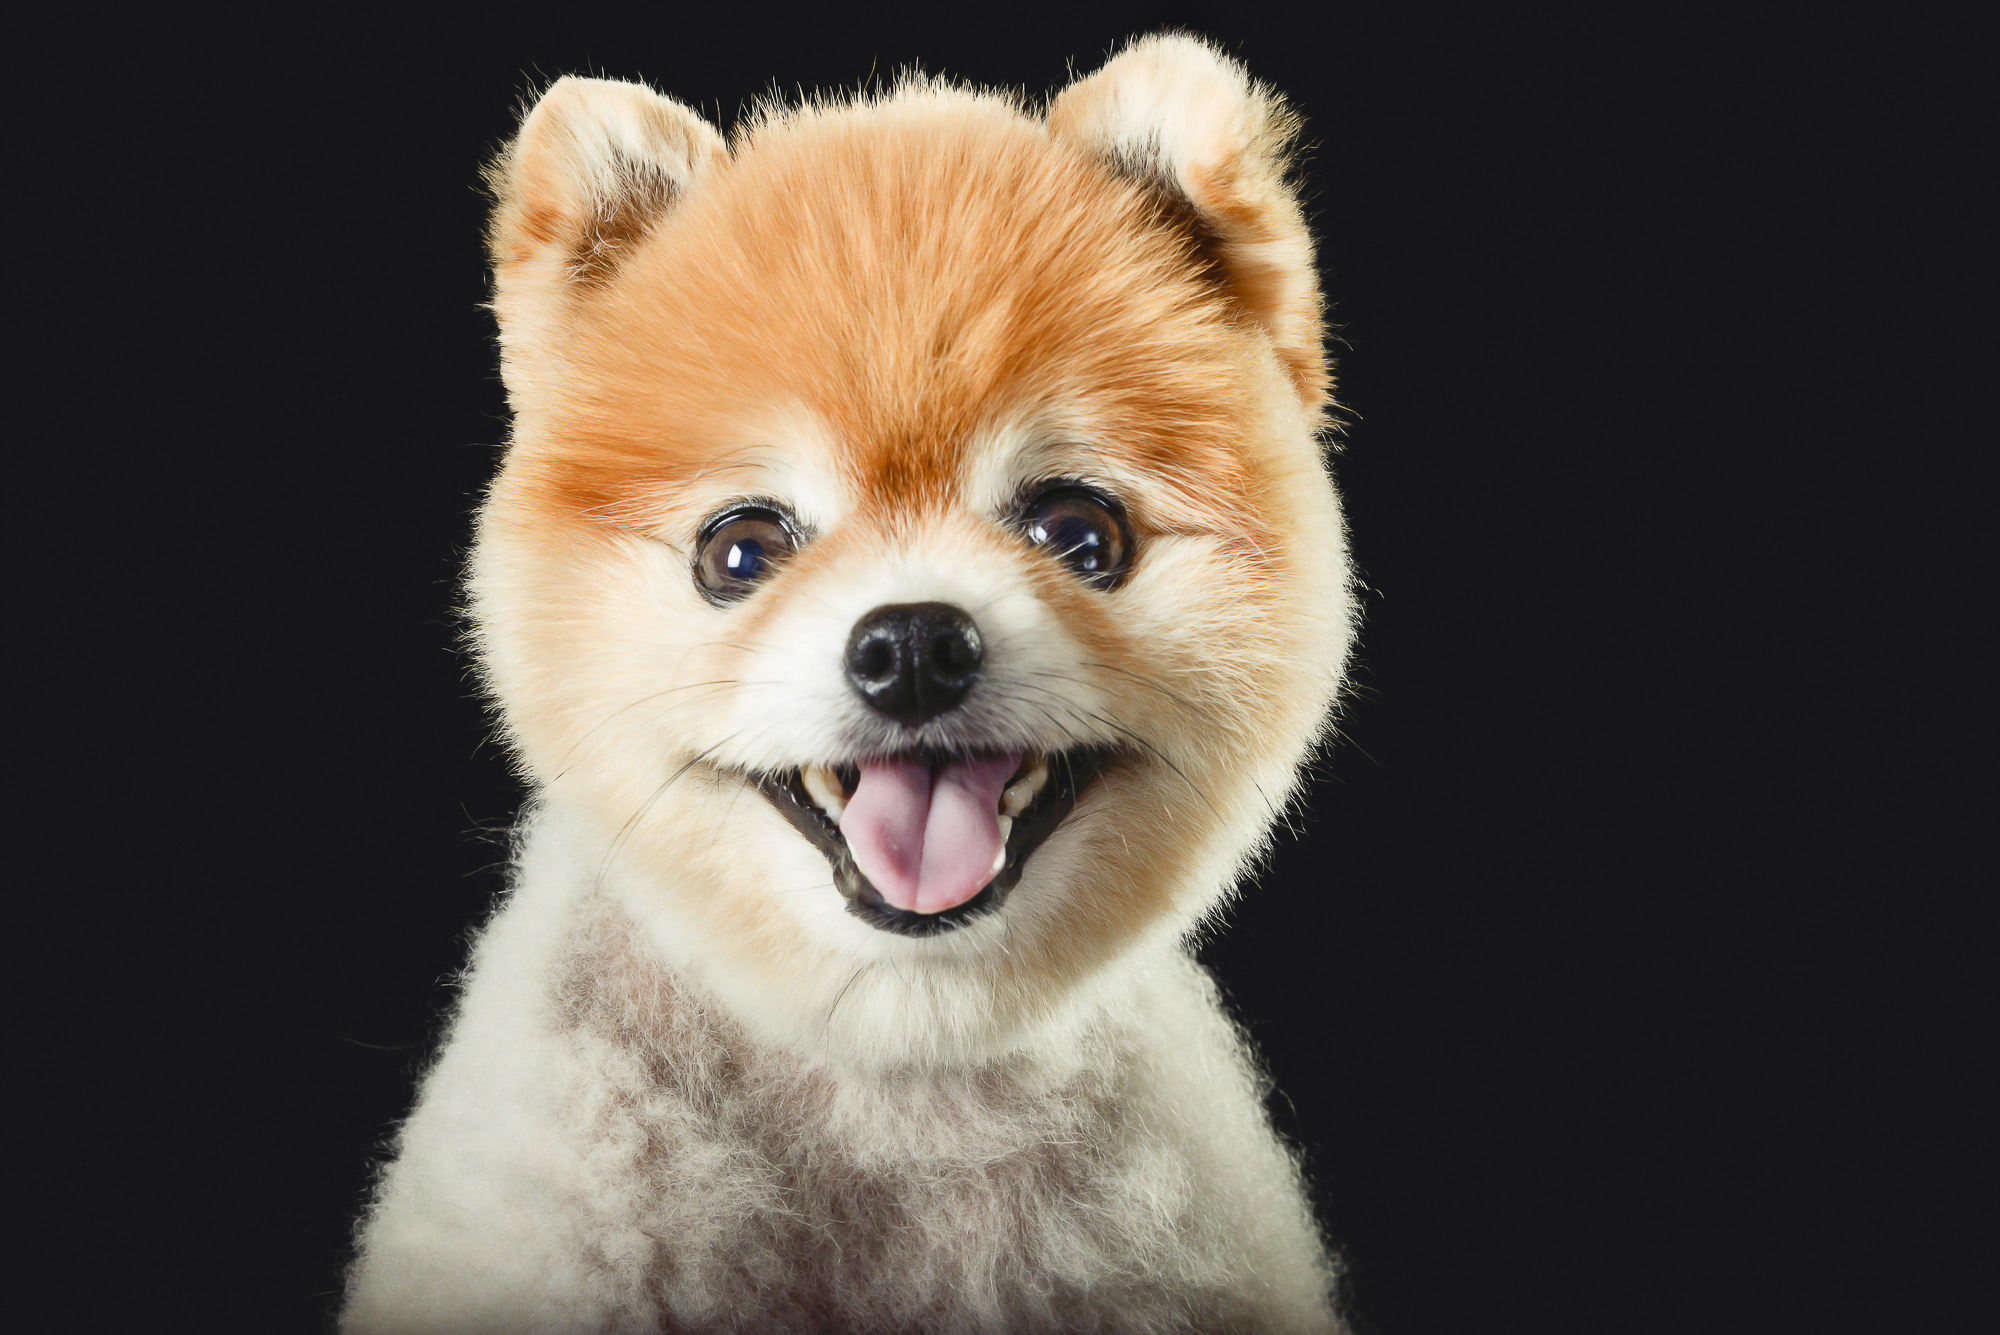 LupinBay_Dog_Pet_Photography_Pomeranian_0168_6505.jpg